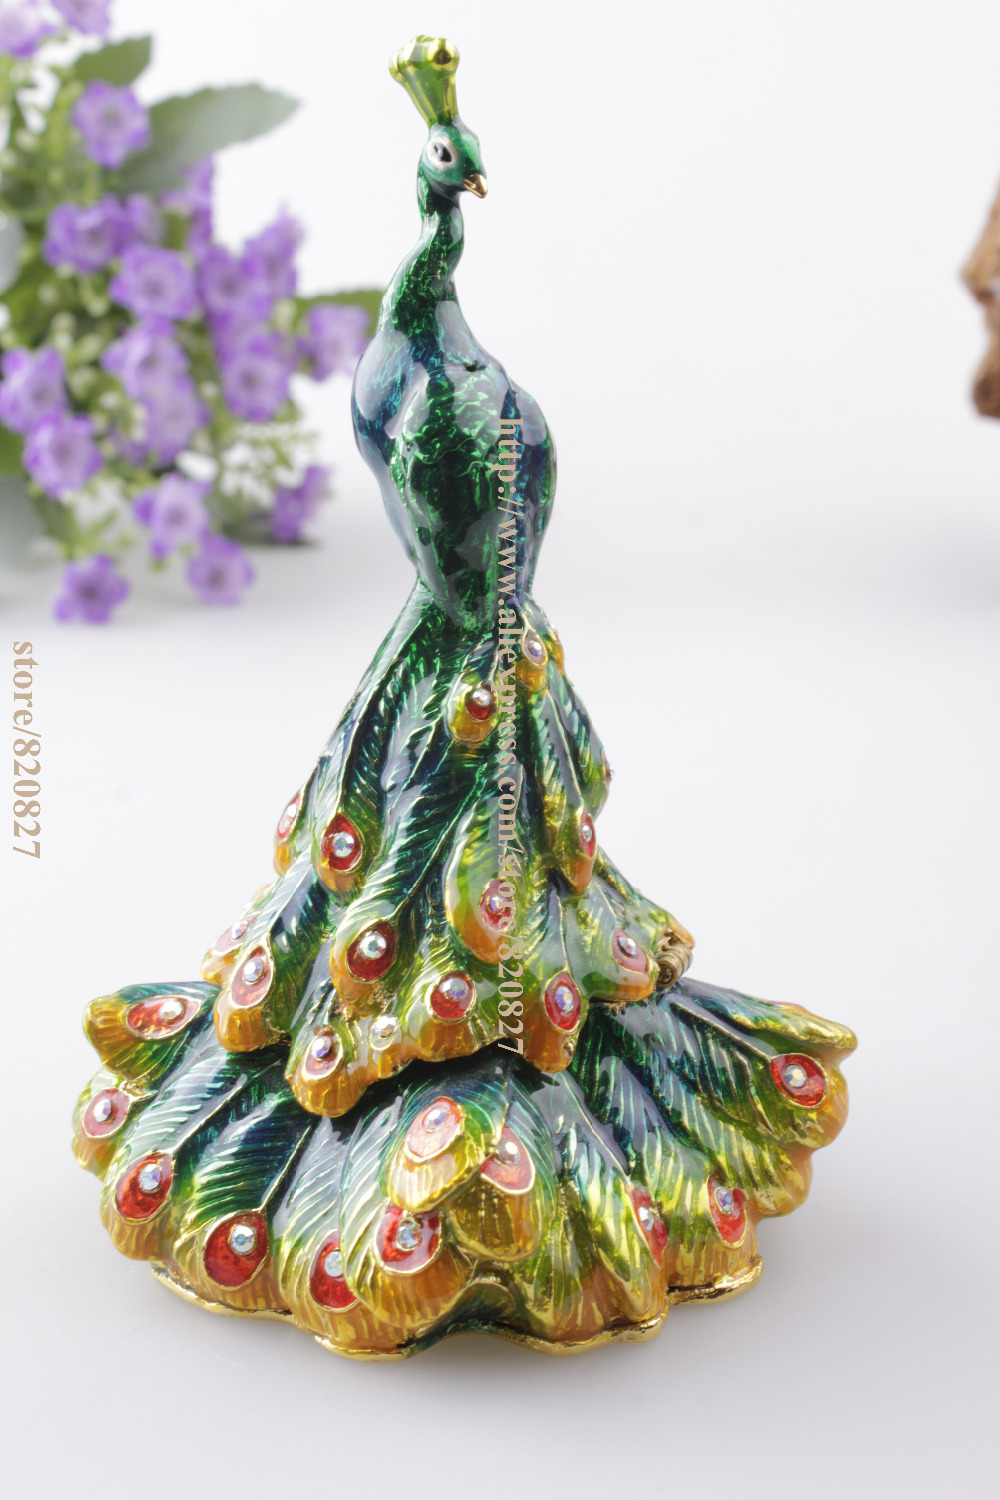 Pretty Peacock Hinged Pewter Trinket Box Product Details Peacock Jeweled Crystal Trinket Box Peacock Hinged Pewter Trinket Box